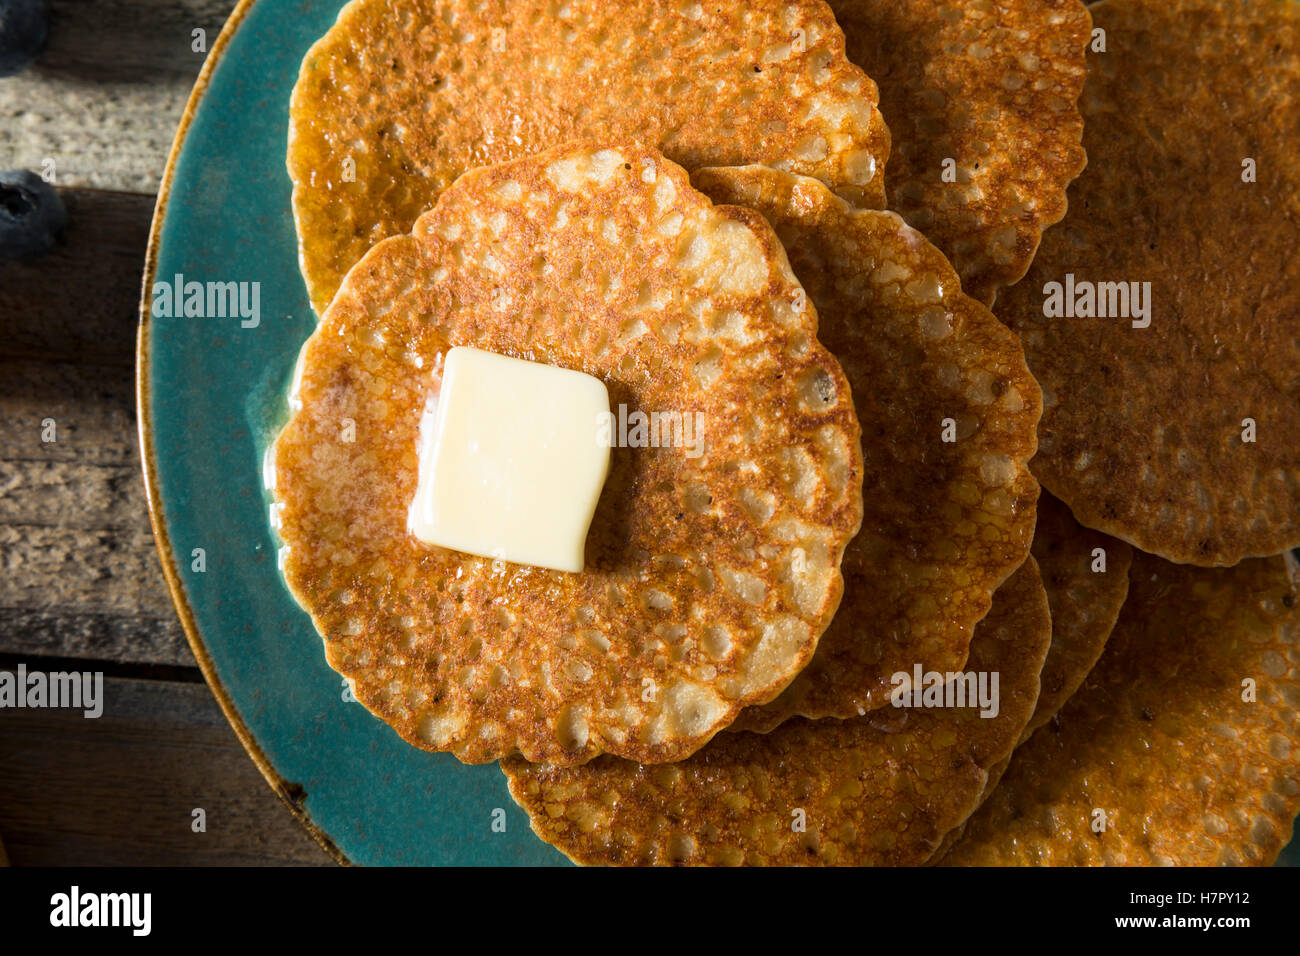 Homemade Mini Silver Dollar Pancakes with Butter and Syrup - Stock Image